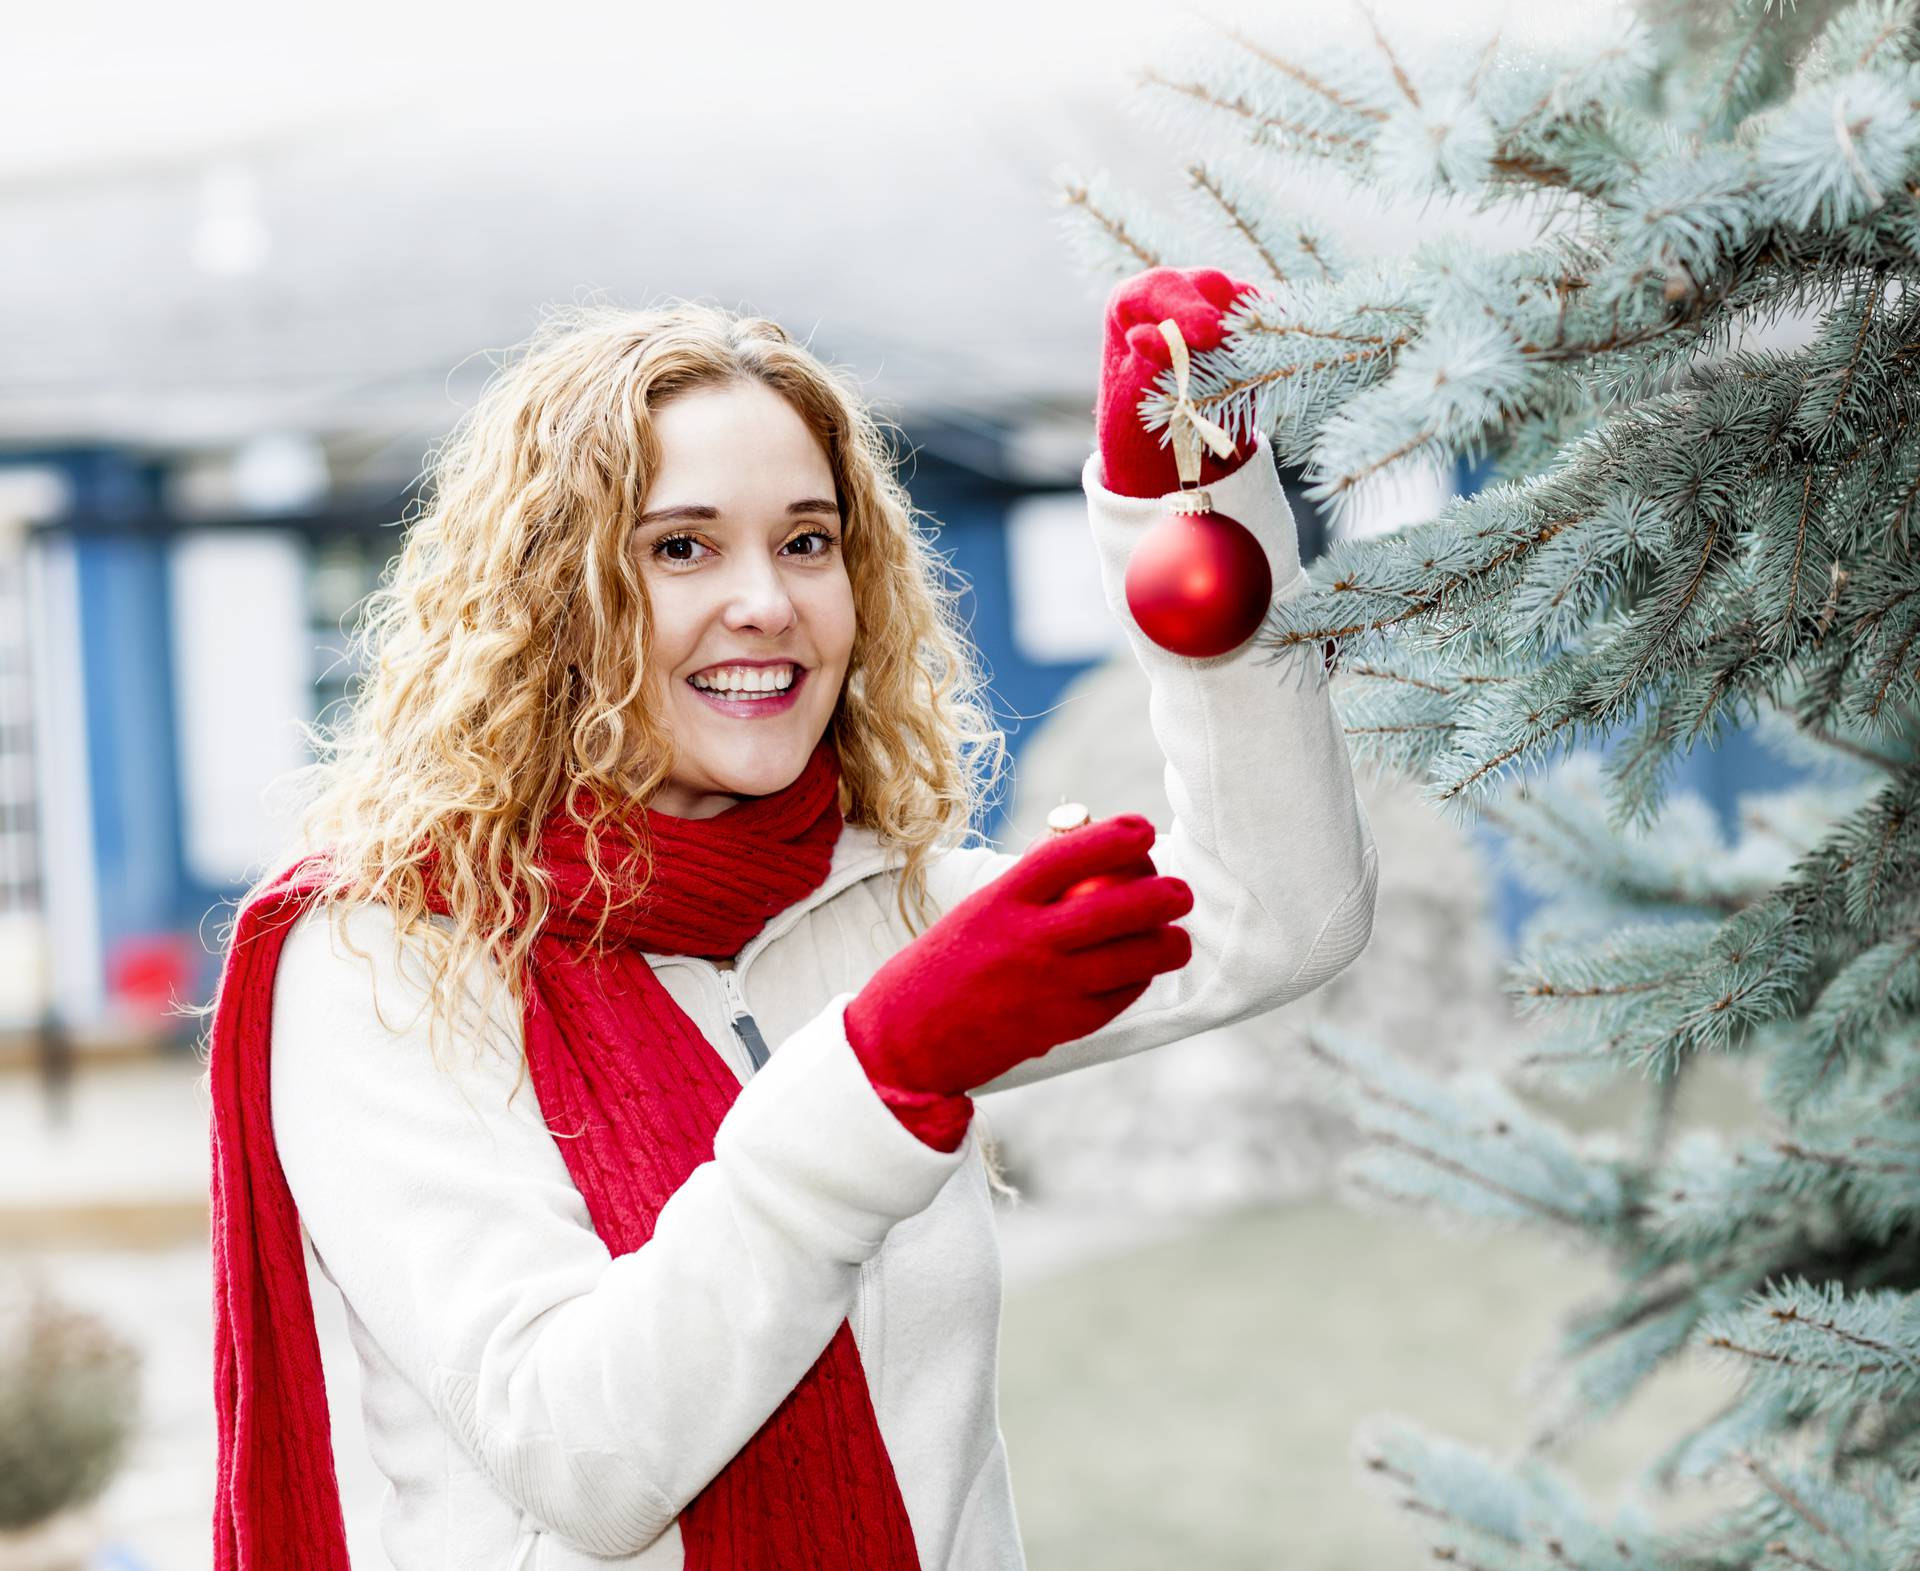 Woman decorating Christmas tree outside